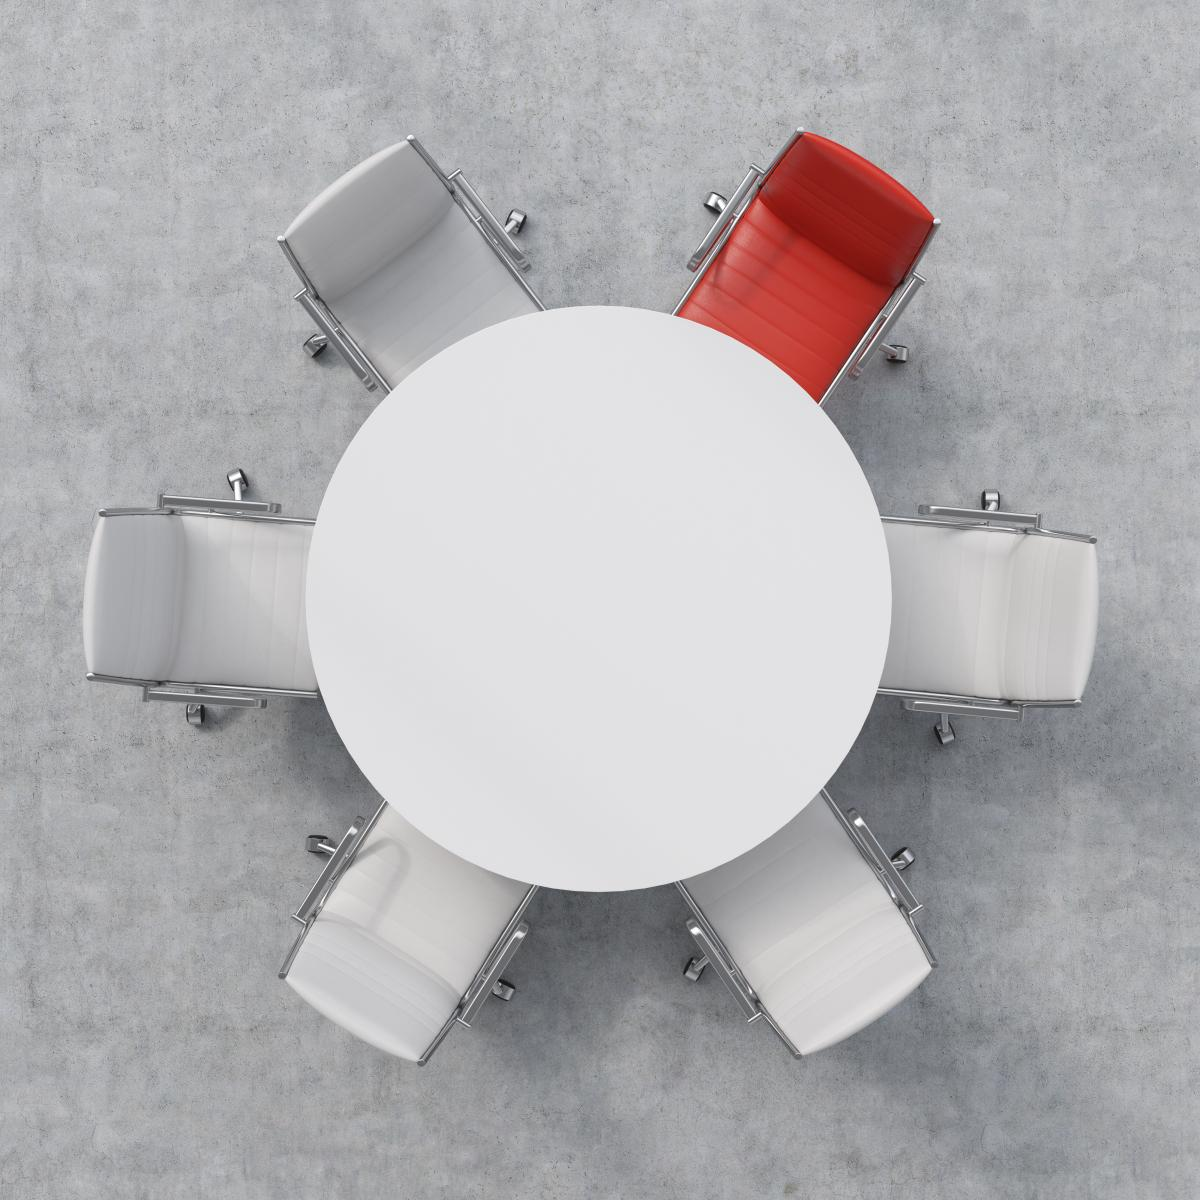 overhead-view-of-white-table-with-five-white-chairs-and-one-red-chair